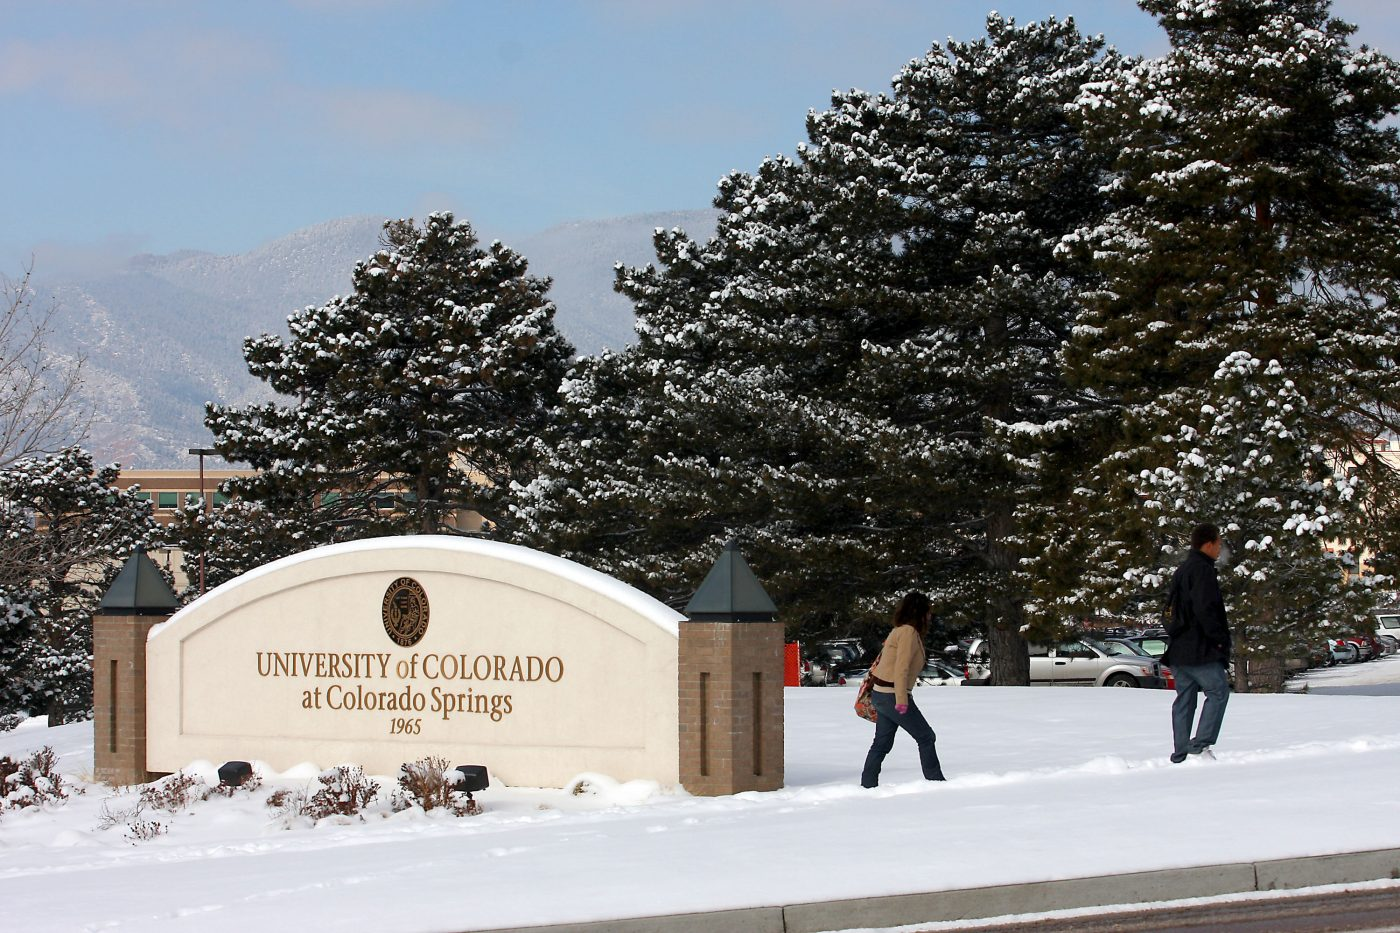 Campus sign in snow